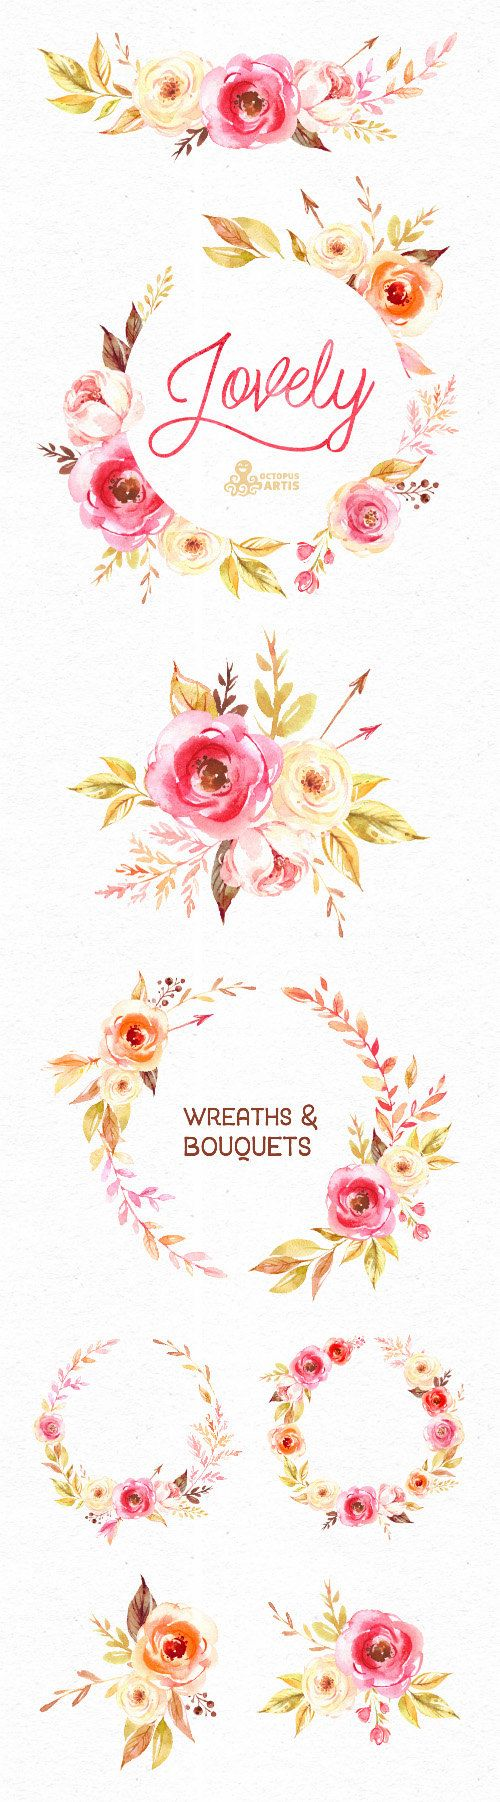 Lovely Flowers. Wreaths and Bouquets. Watercolor от OctopusArtis